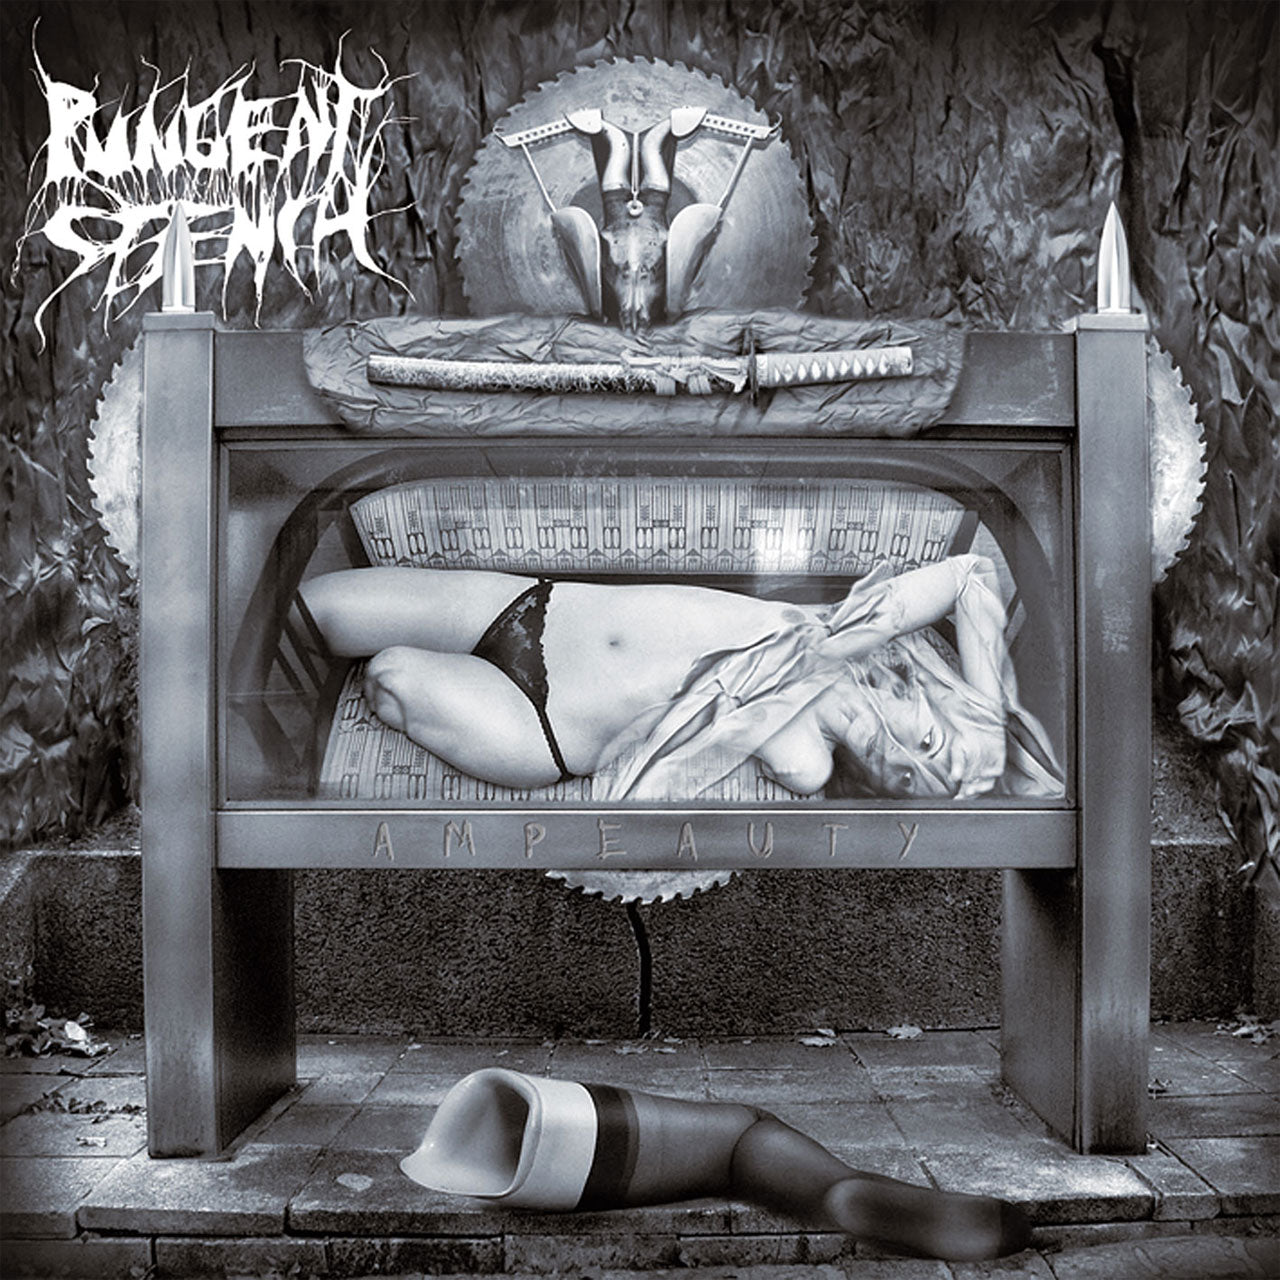 Pungent Stench - Ampeauty (2018 Reissue) (Clear Edition) (LP)